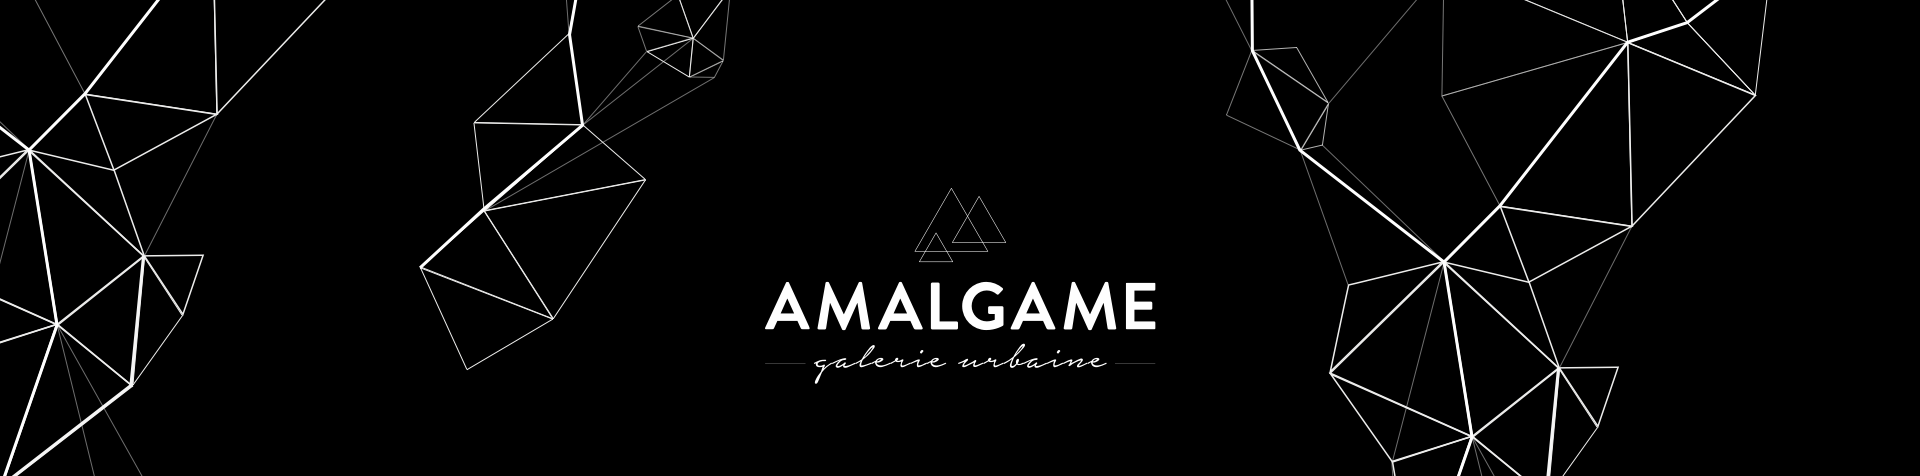 Amalgame - Urban Art Gallery - DUO